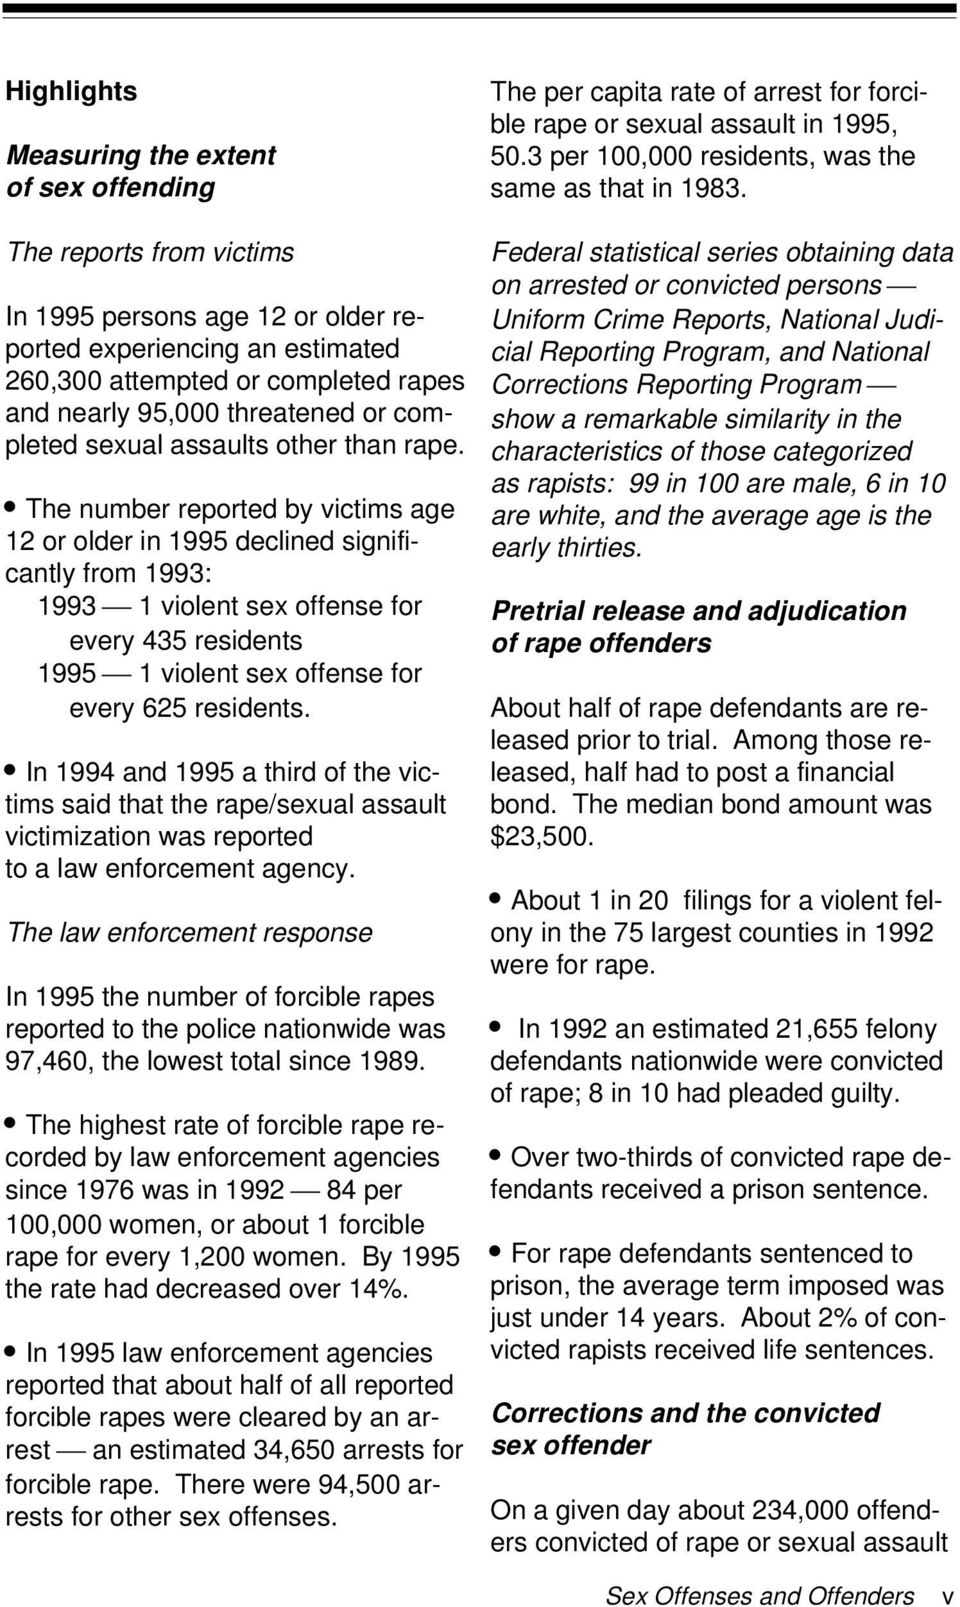 The number reported by victims age 12 or older in 1995 declined significantly from 1993: 1993 1 violent sex offense for every 435 residents 1995 1 violent sex offense for every 625 residents.